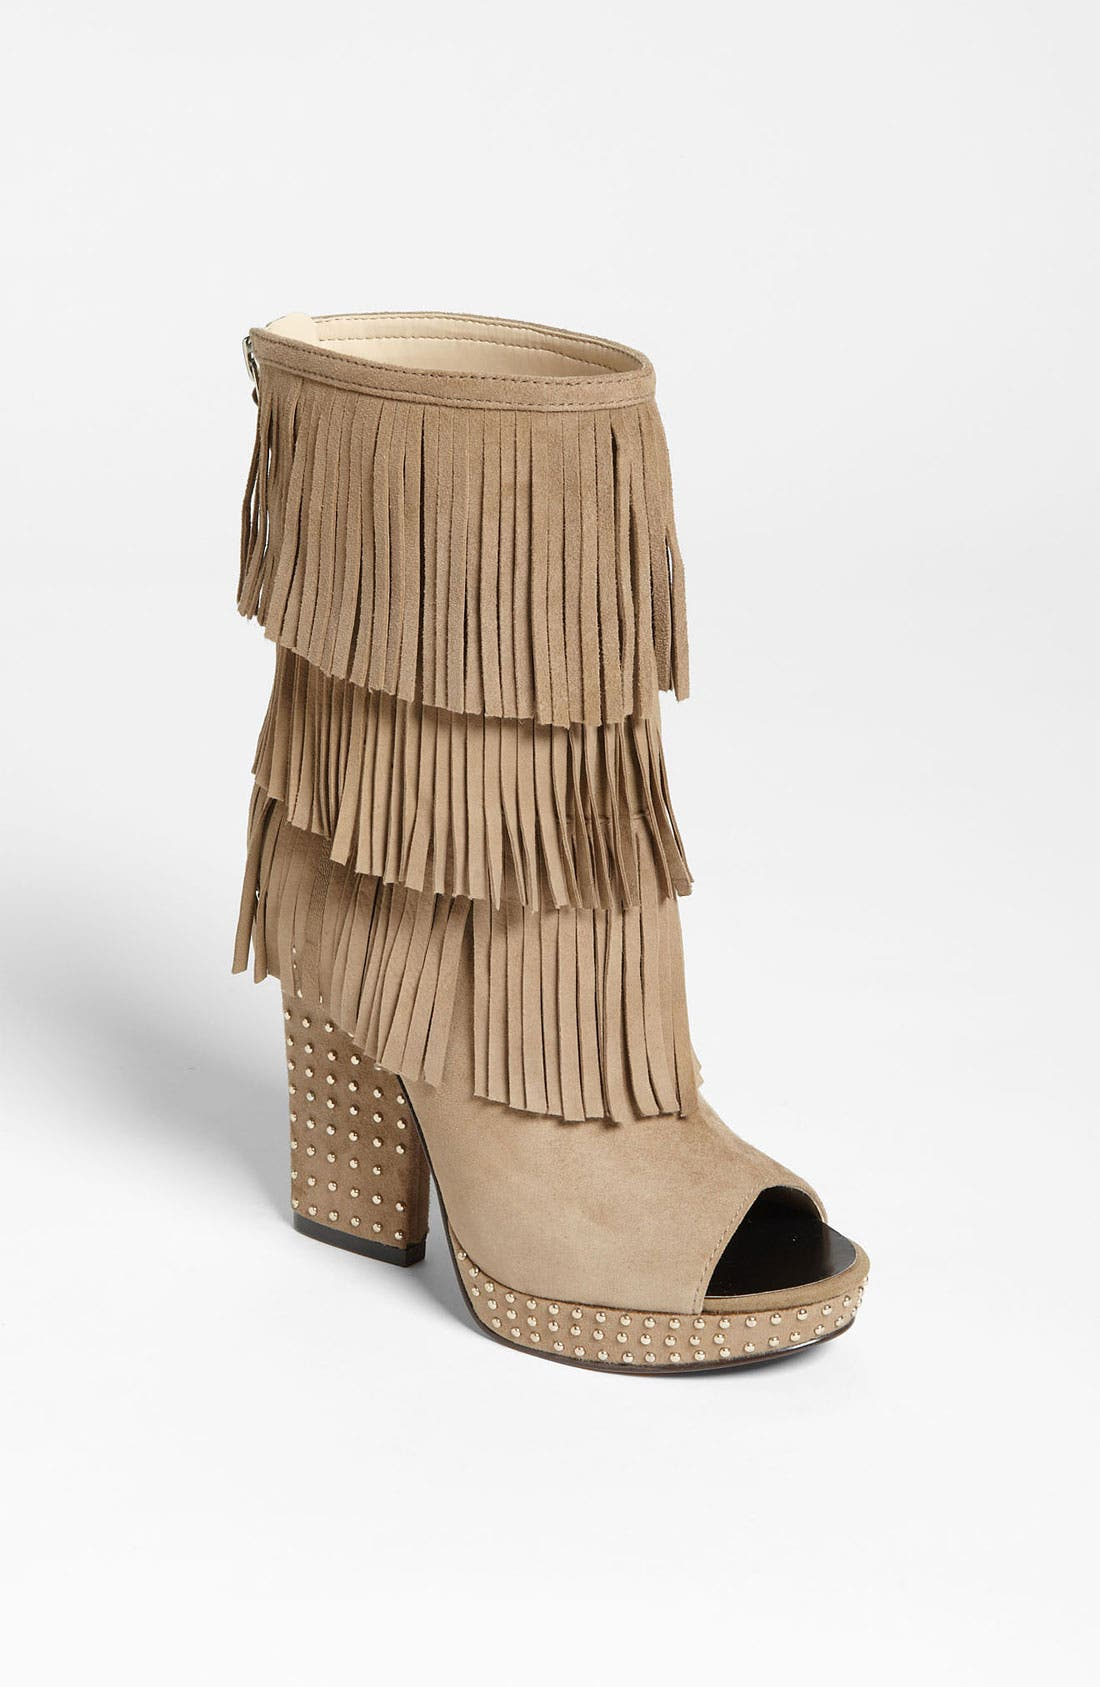 Alternate Image 1 Selected - Enzo Angiolini 'Flore' Boot